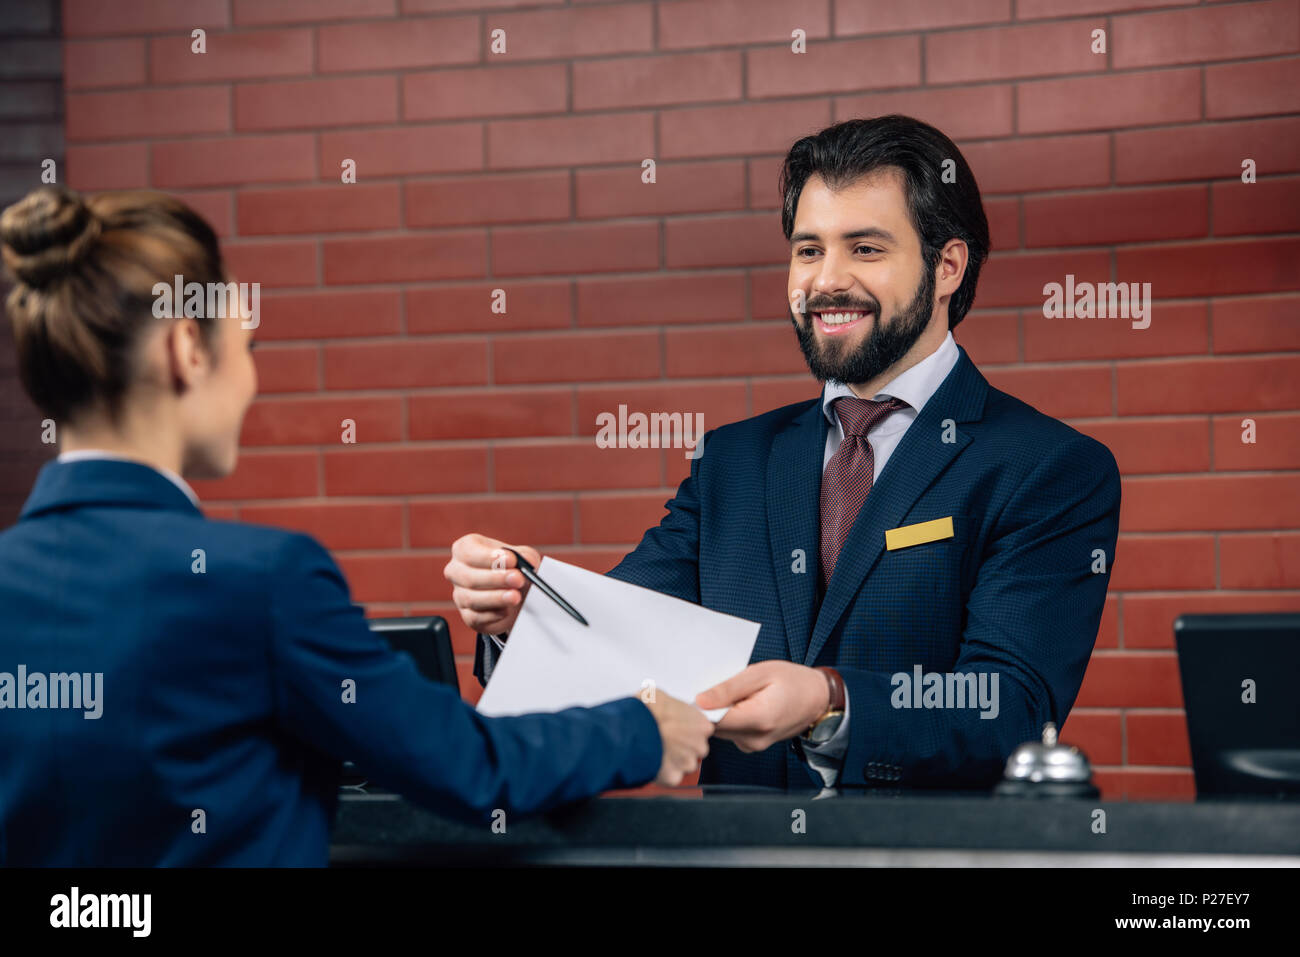 hotel receptionist showing contract customer at counter - Stock Image